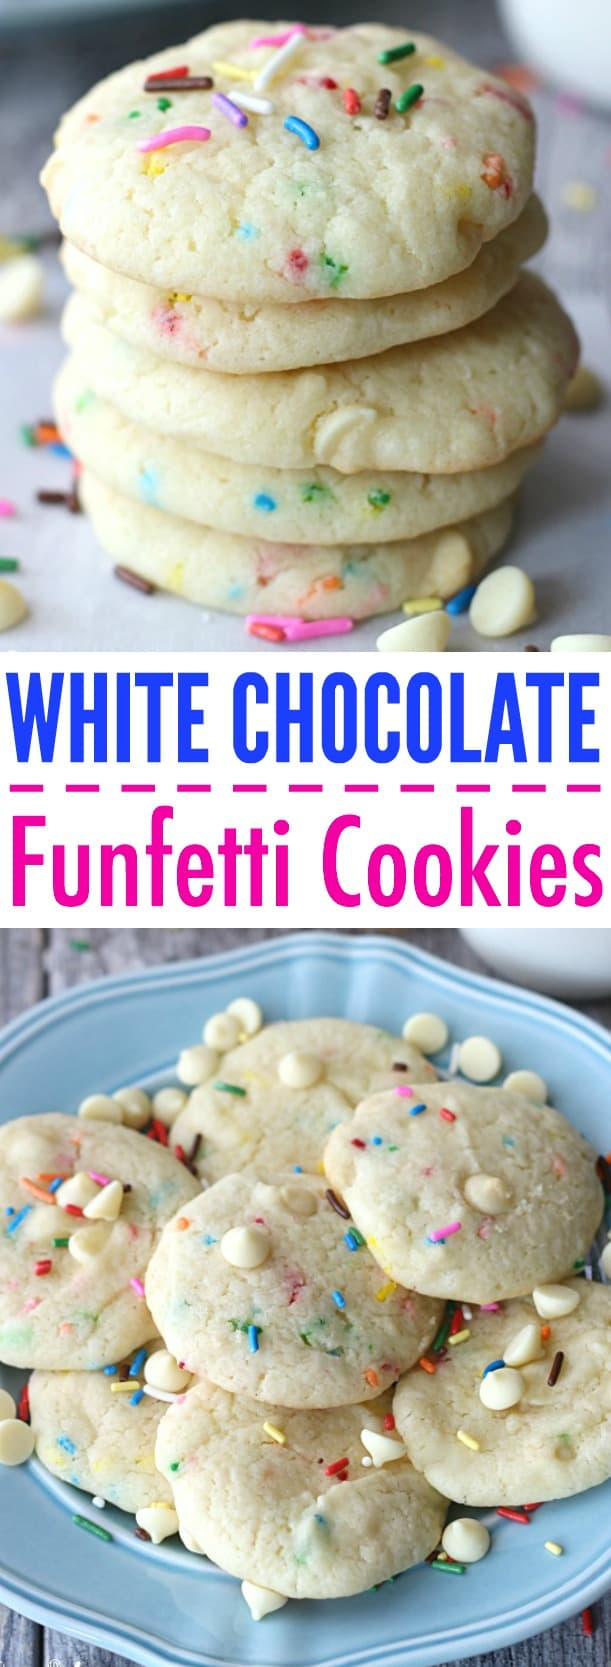 These White Chocolate Funfetti Cookies are made with just FOUR ingredients and they are completely addicting!